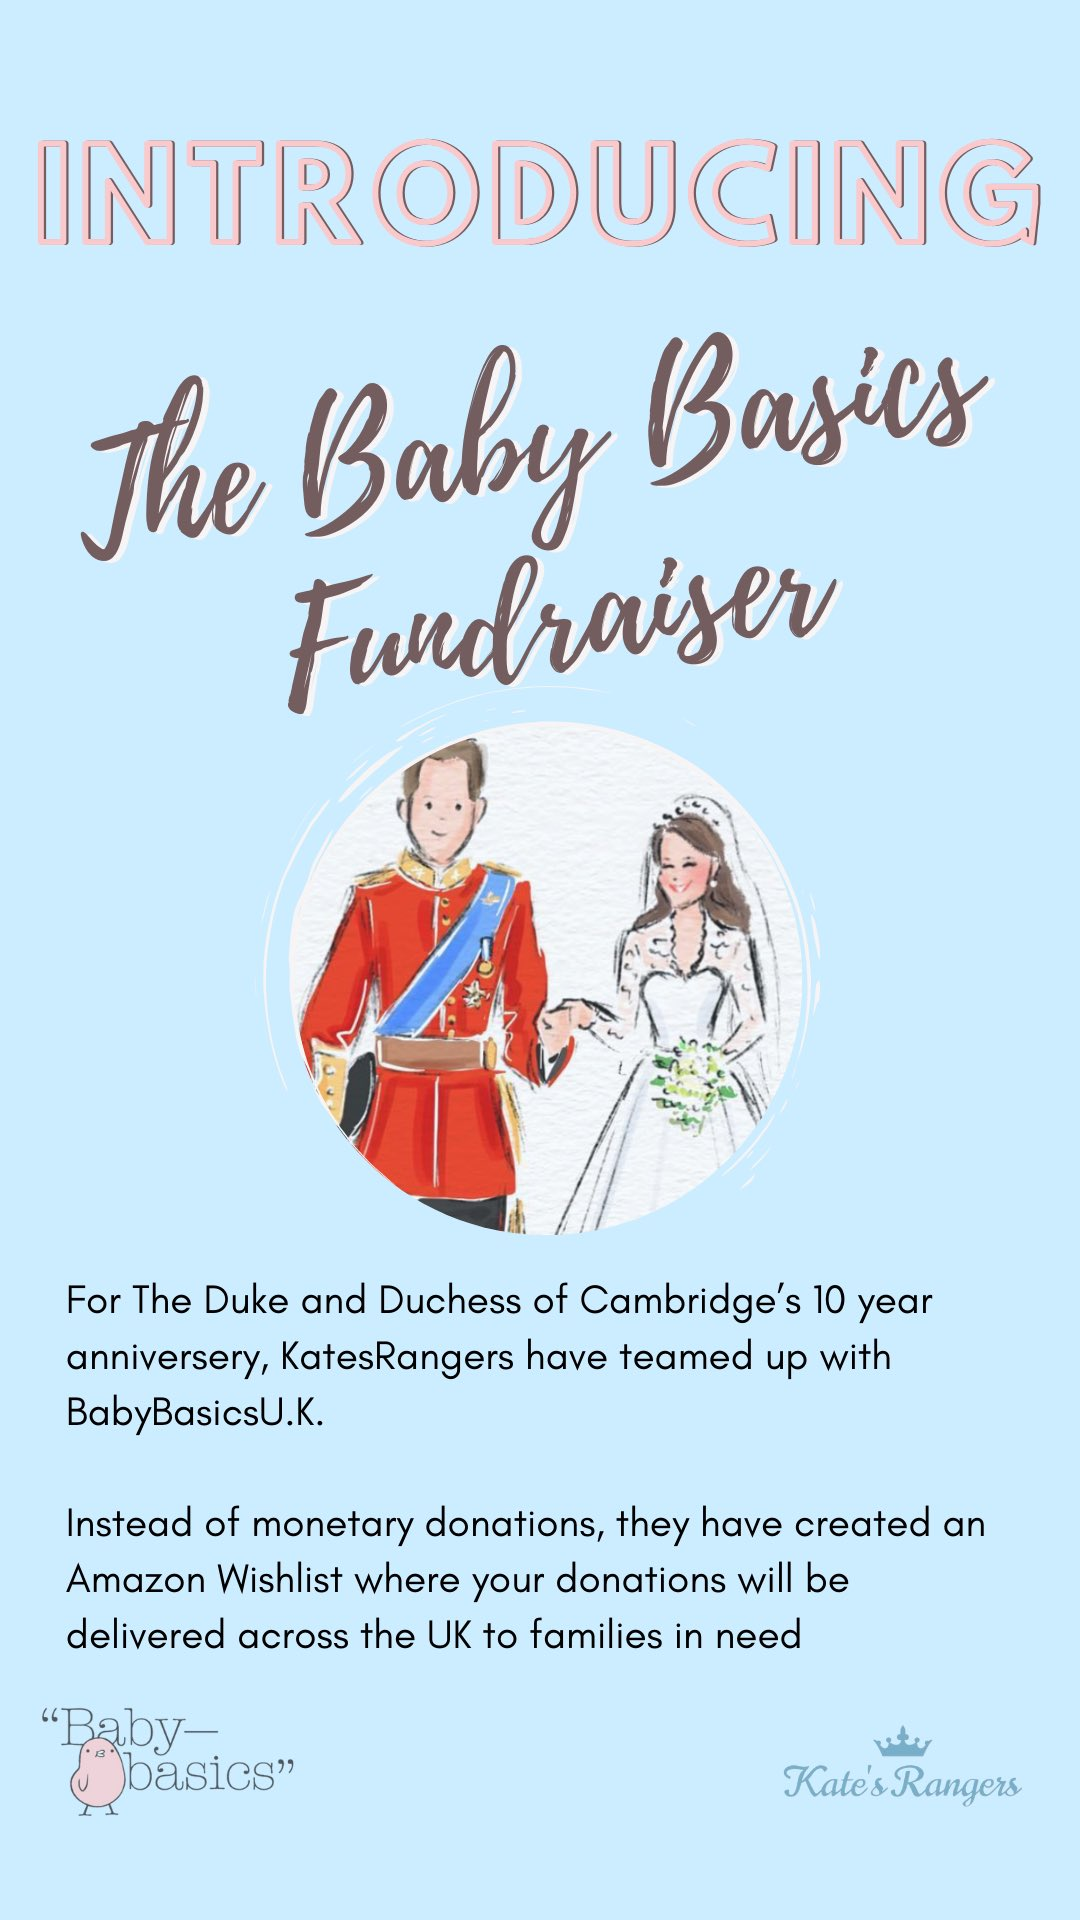 The Baby Basics Fundraiser organised by Kate's Rangers on Twitter and Instagram